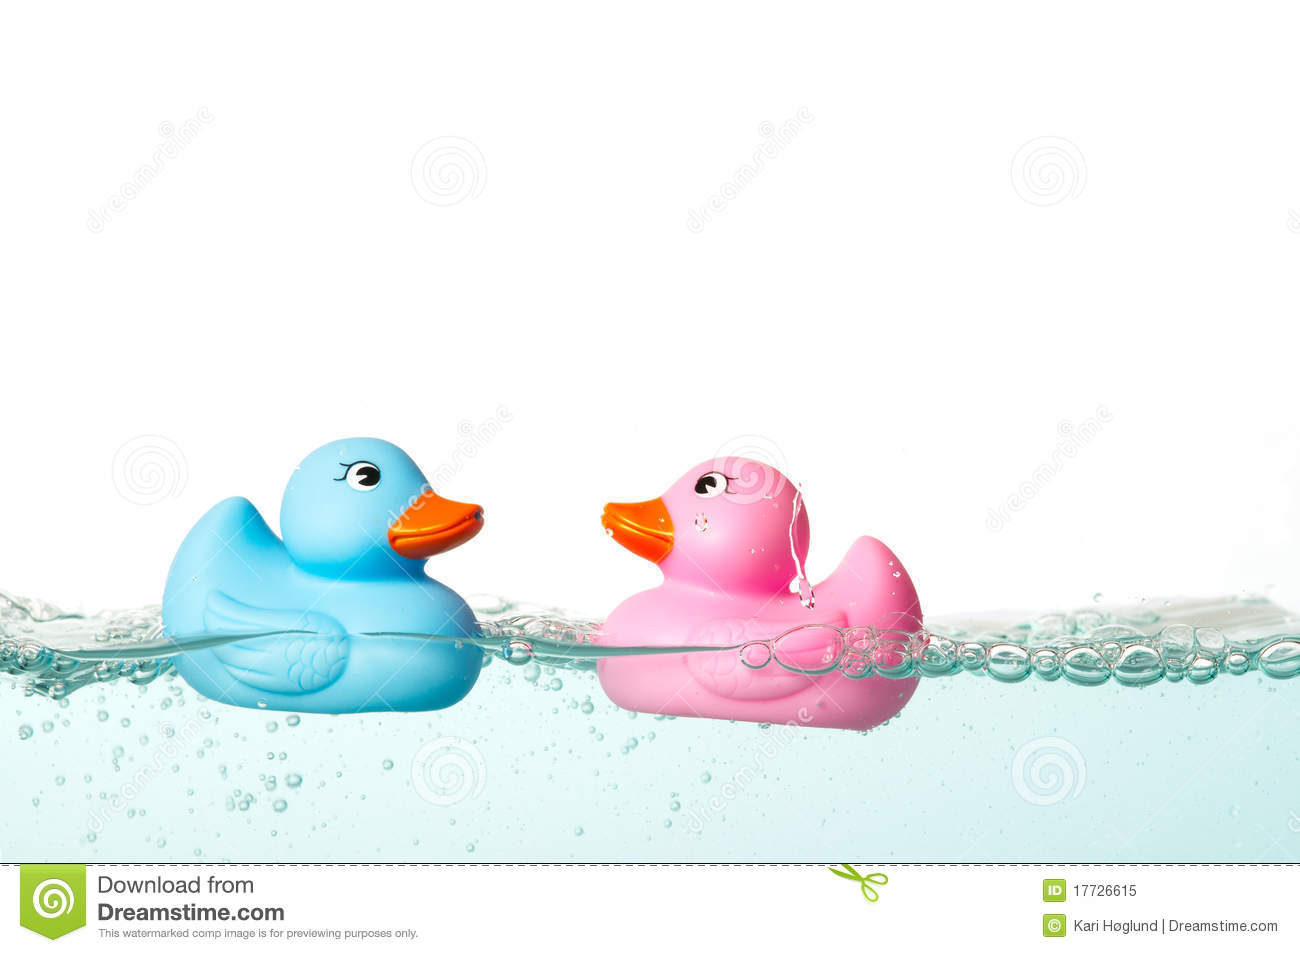 Rubber duck royalty free stock photo image 17726615